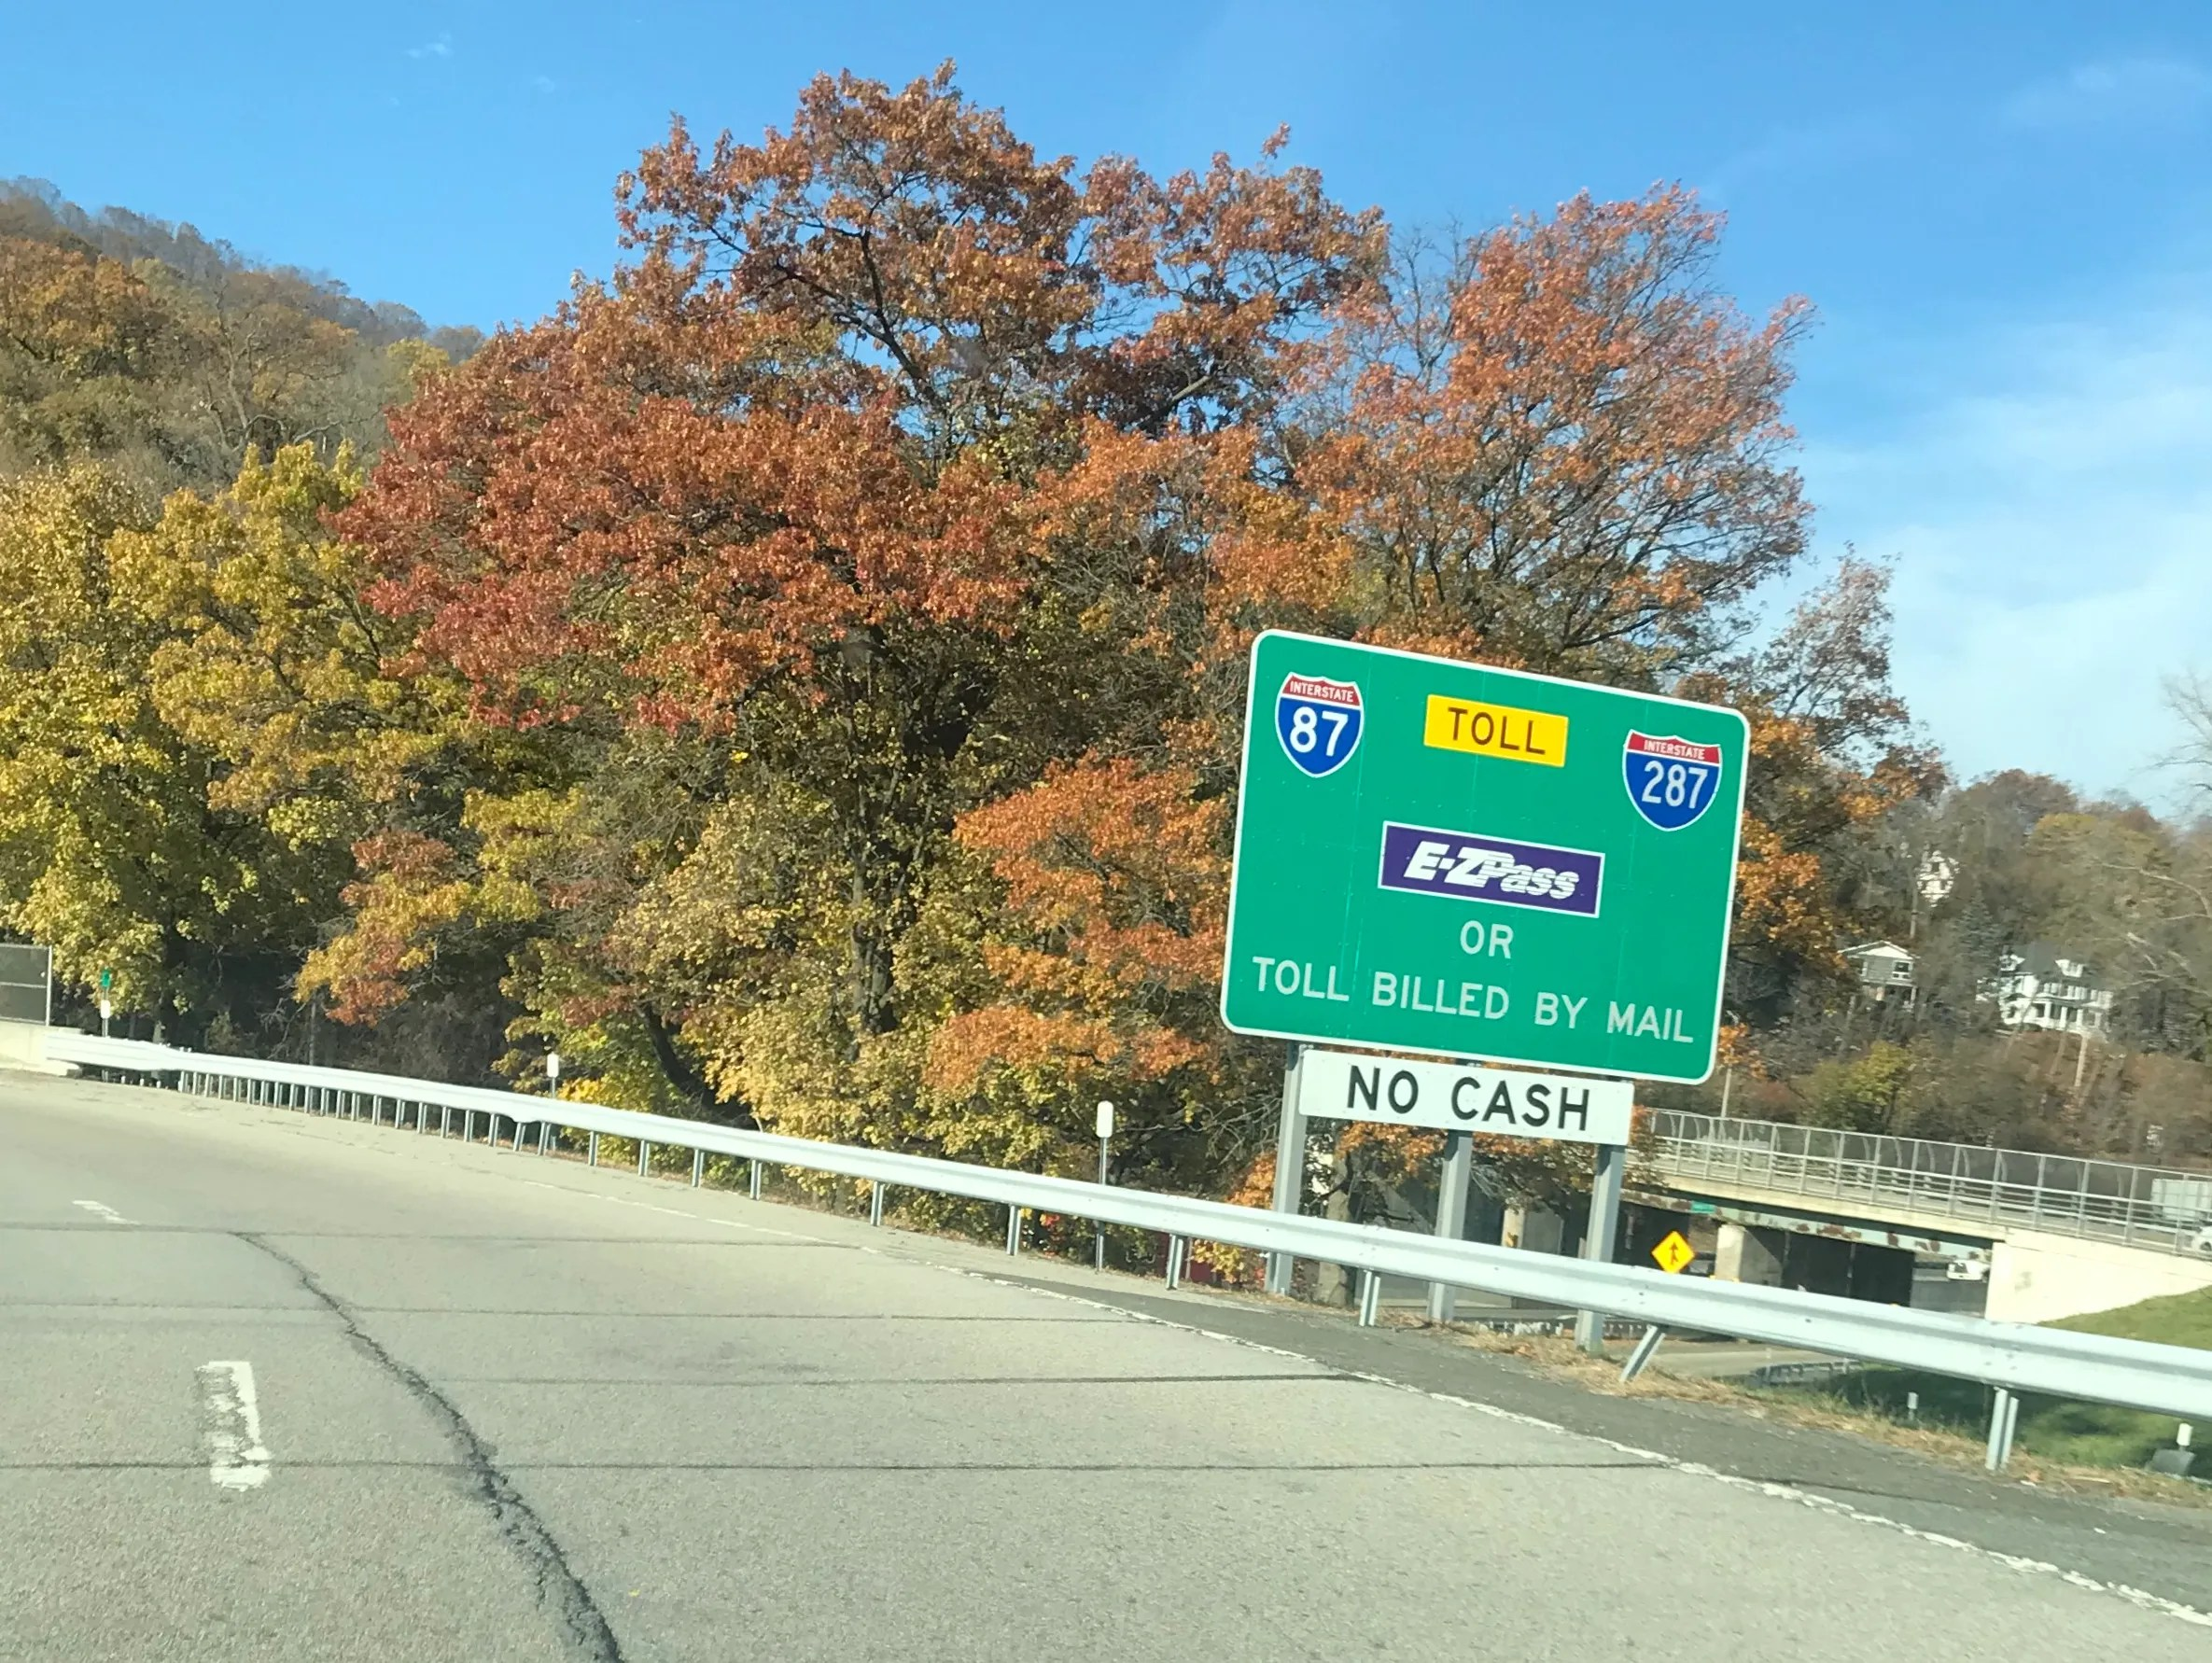 New York State Thruway must make Tappan Zee e tolls easier to pay A sign on the South Nyack eastbound Thruway entrance